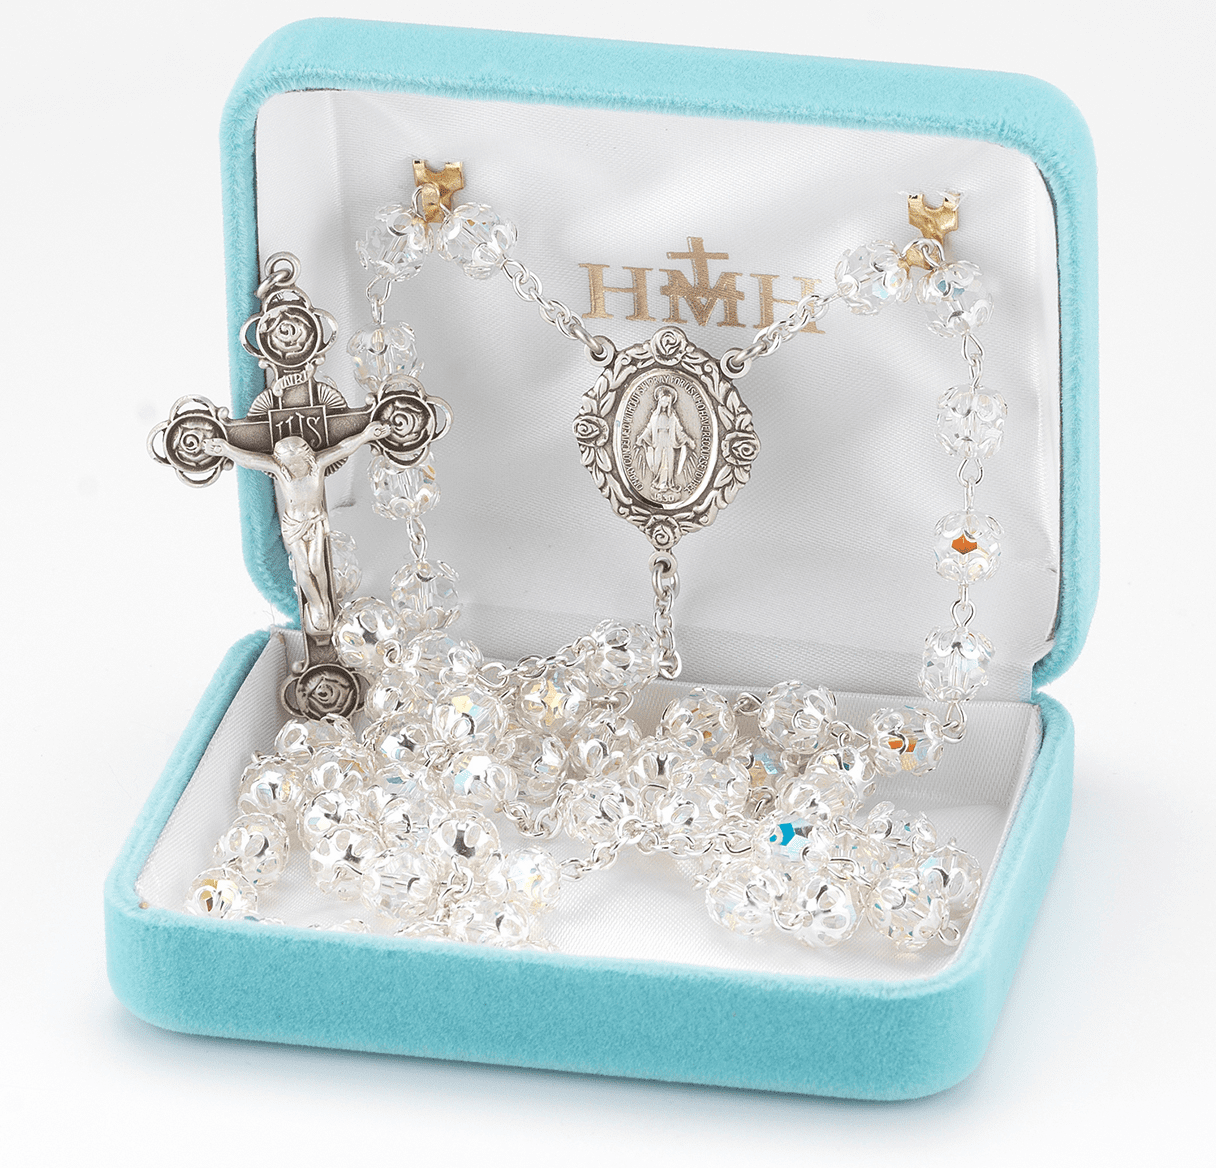 HMH Religious Rose Crucifix and Center Swarovski Crystal Sterling Silver Prayer Rosary